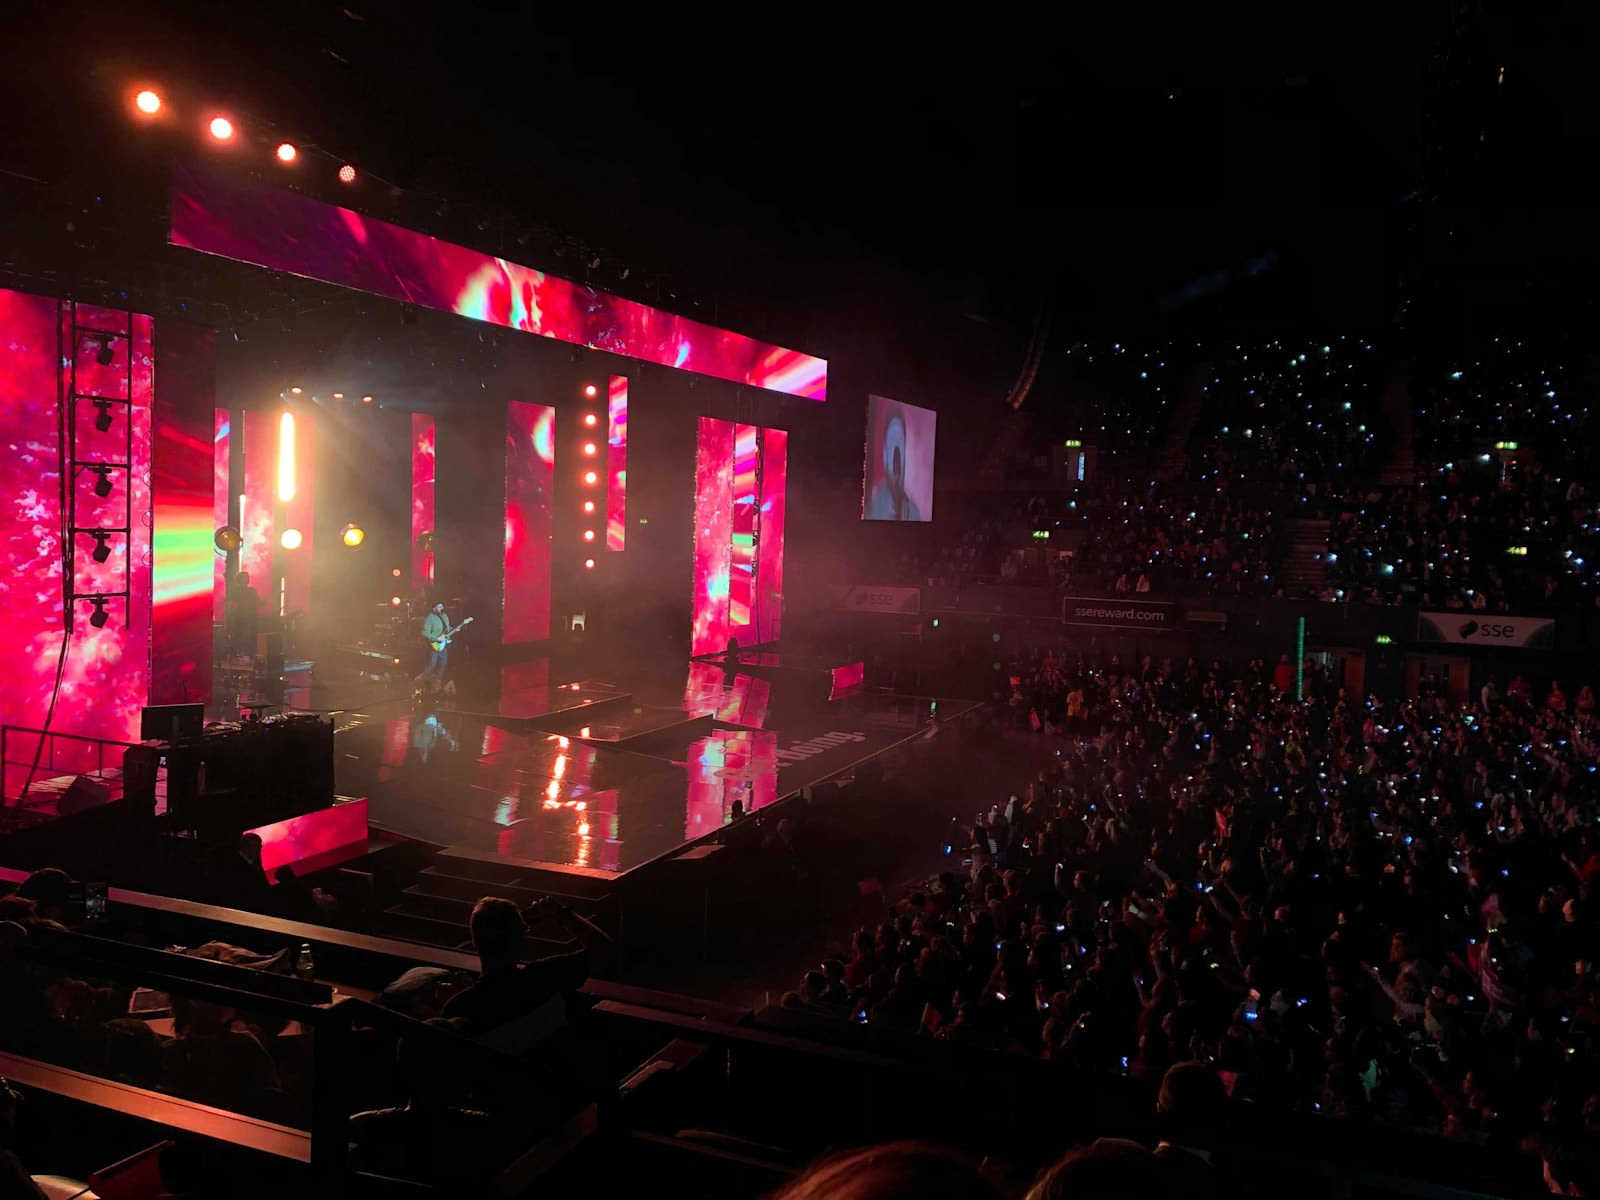 A big stage looking on from the left with pink lighting and a band performing